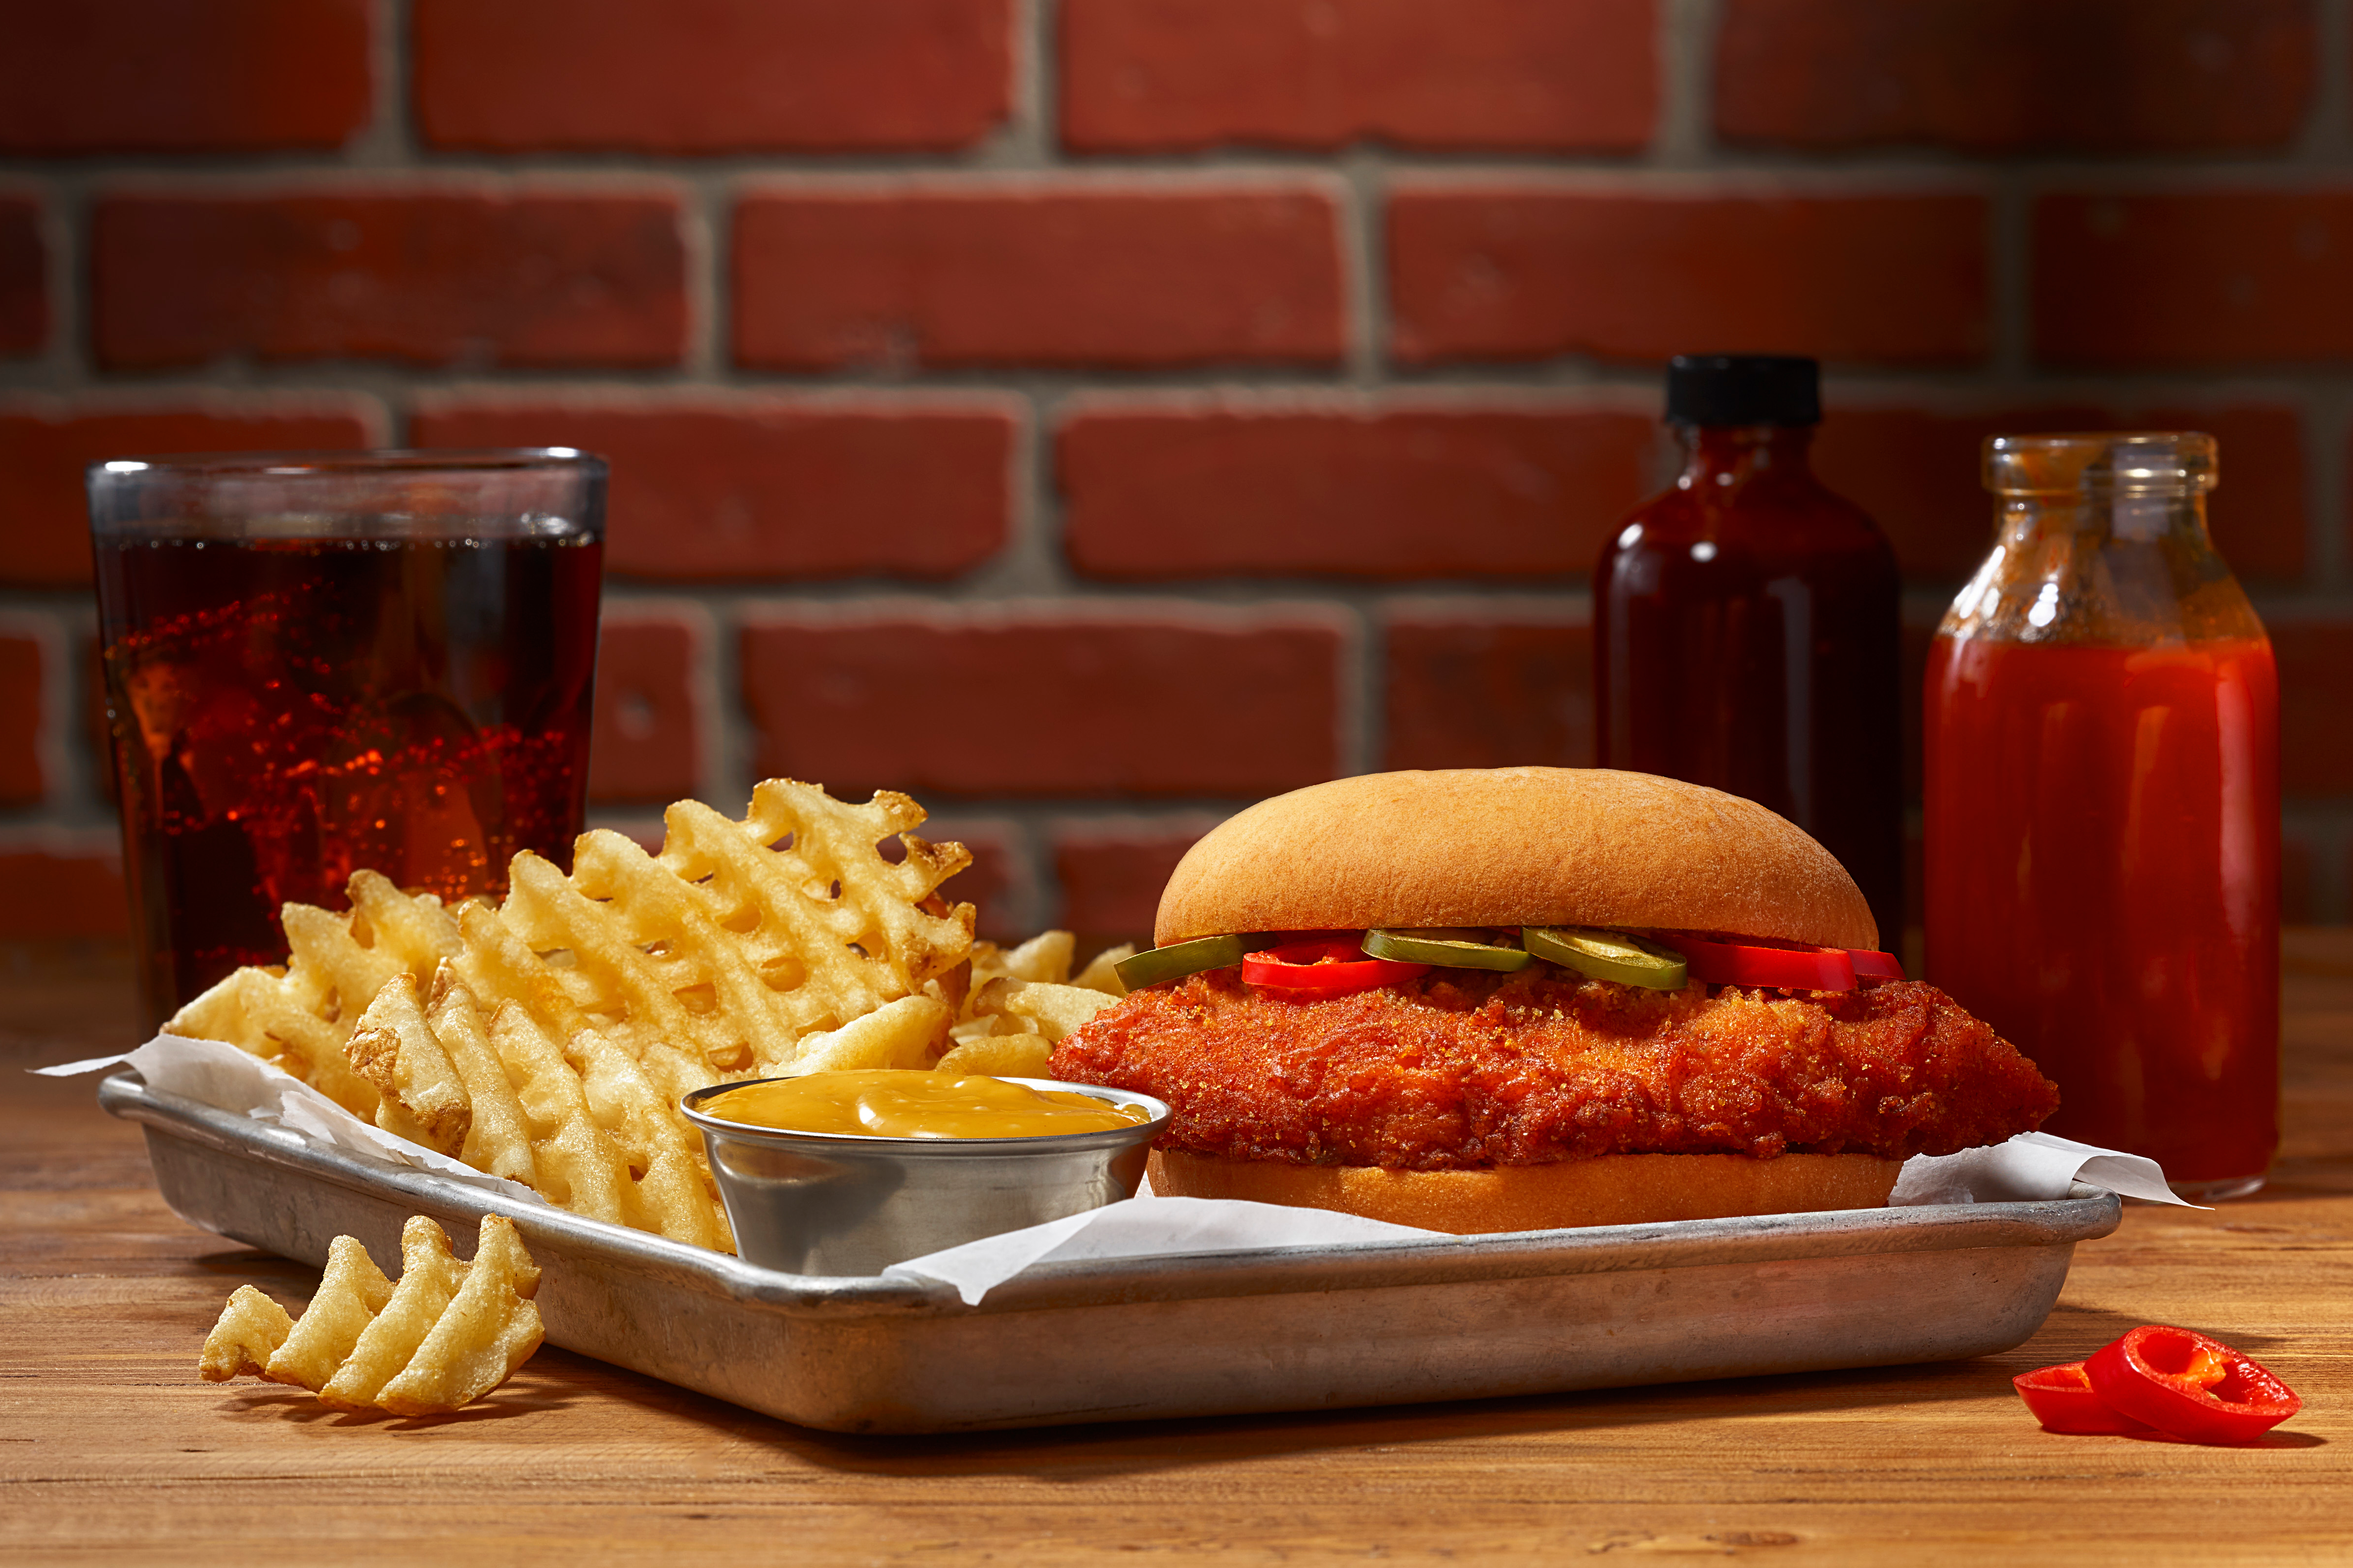 Member's Mark Southern Style Spicy Chicken Sandwich on a tray with waffle fries and a coke in the background